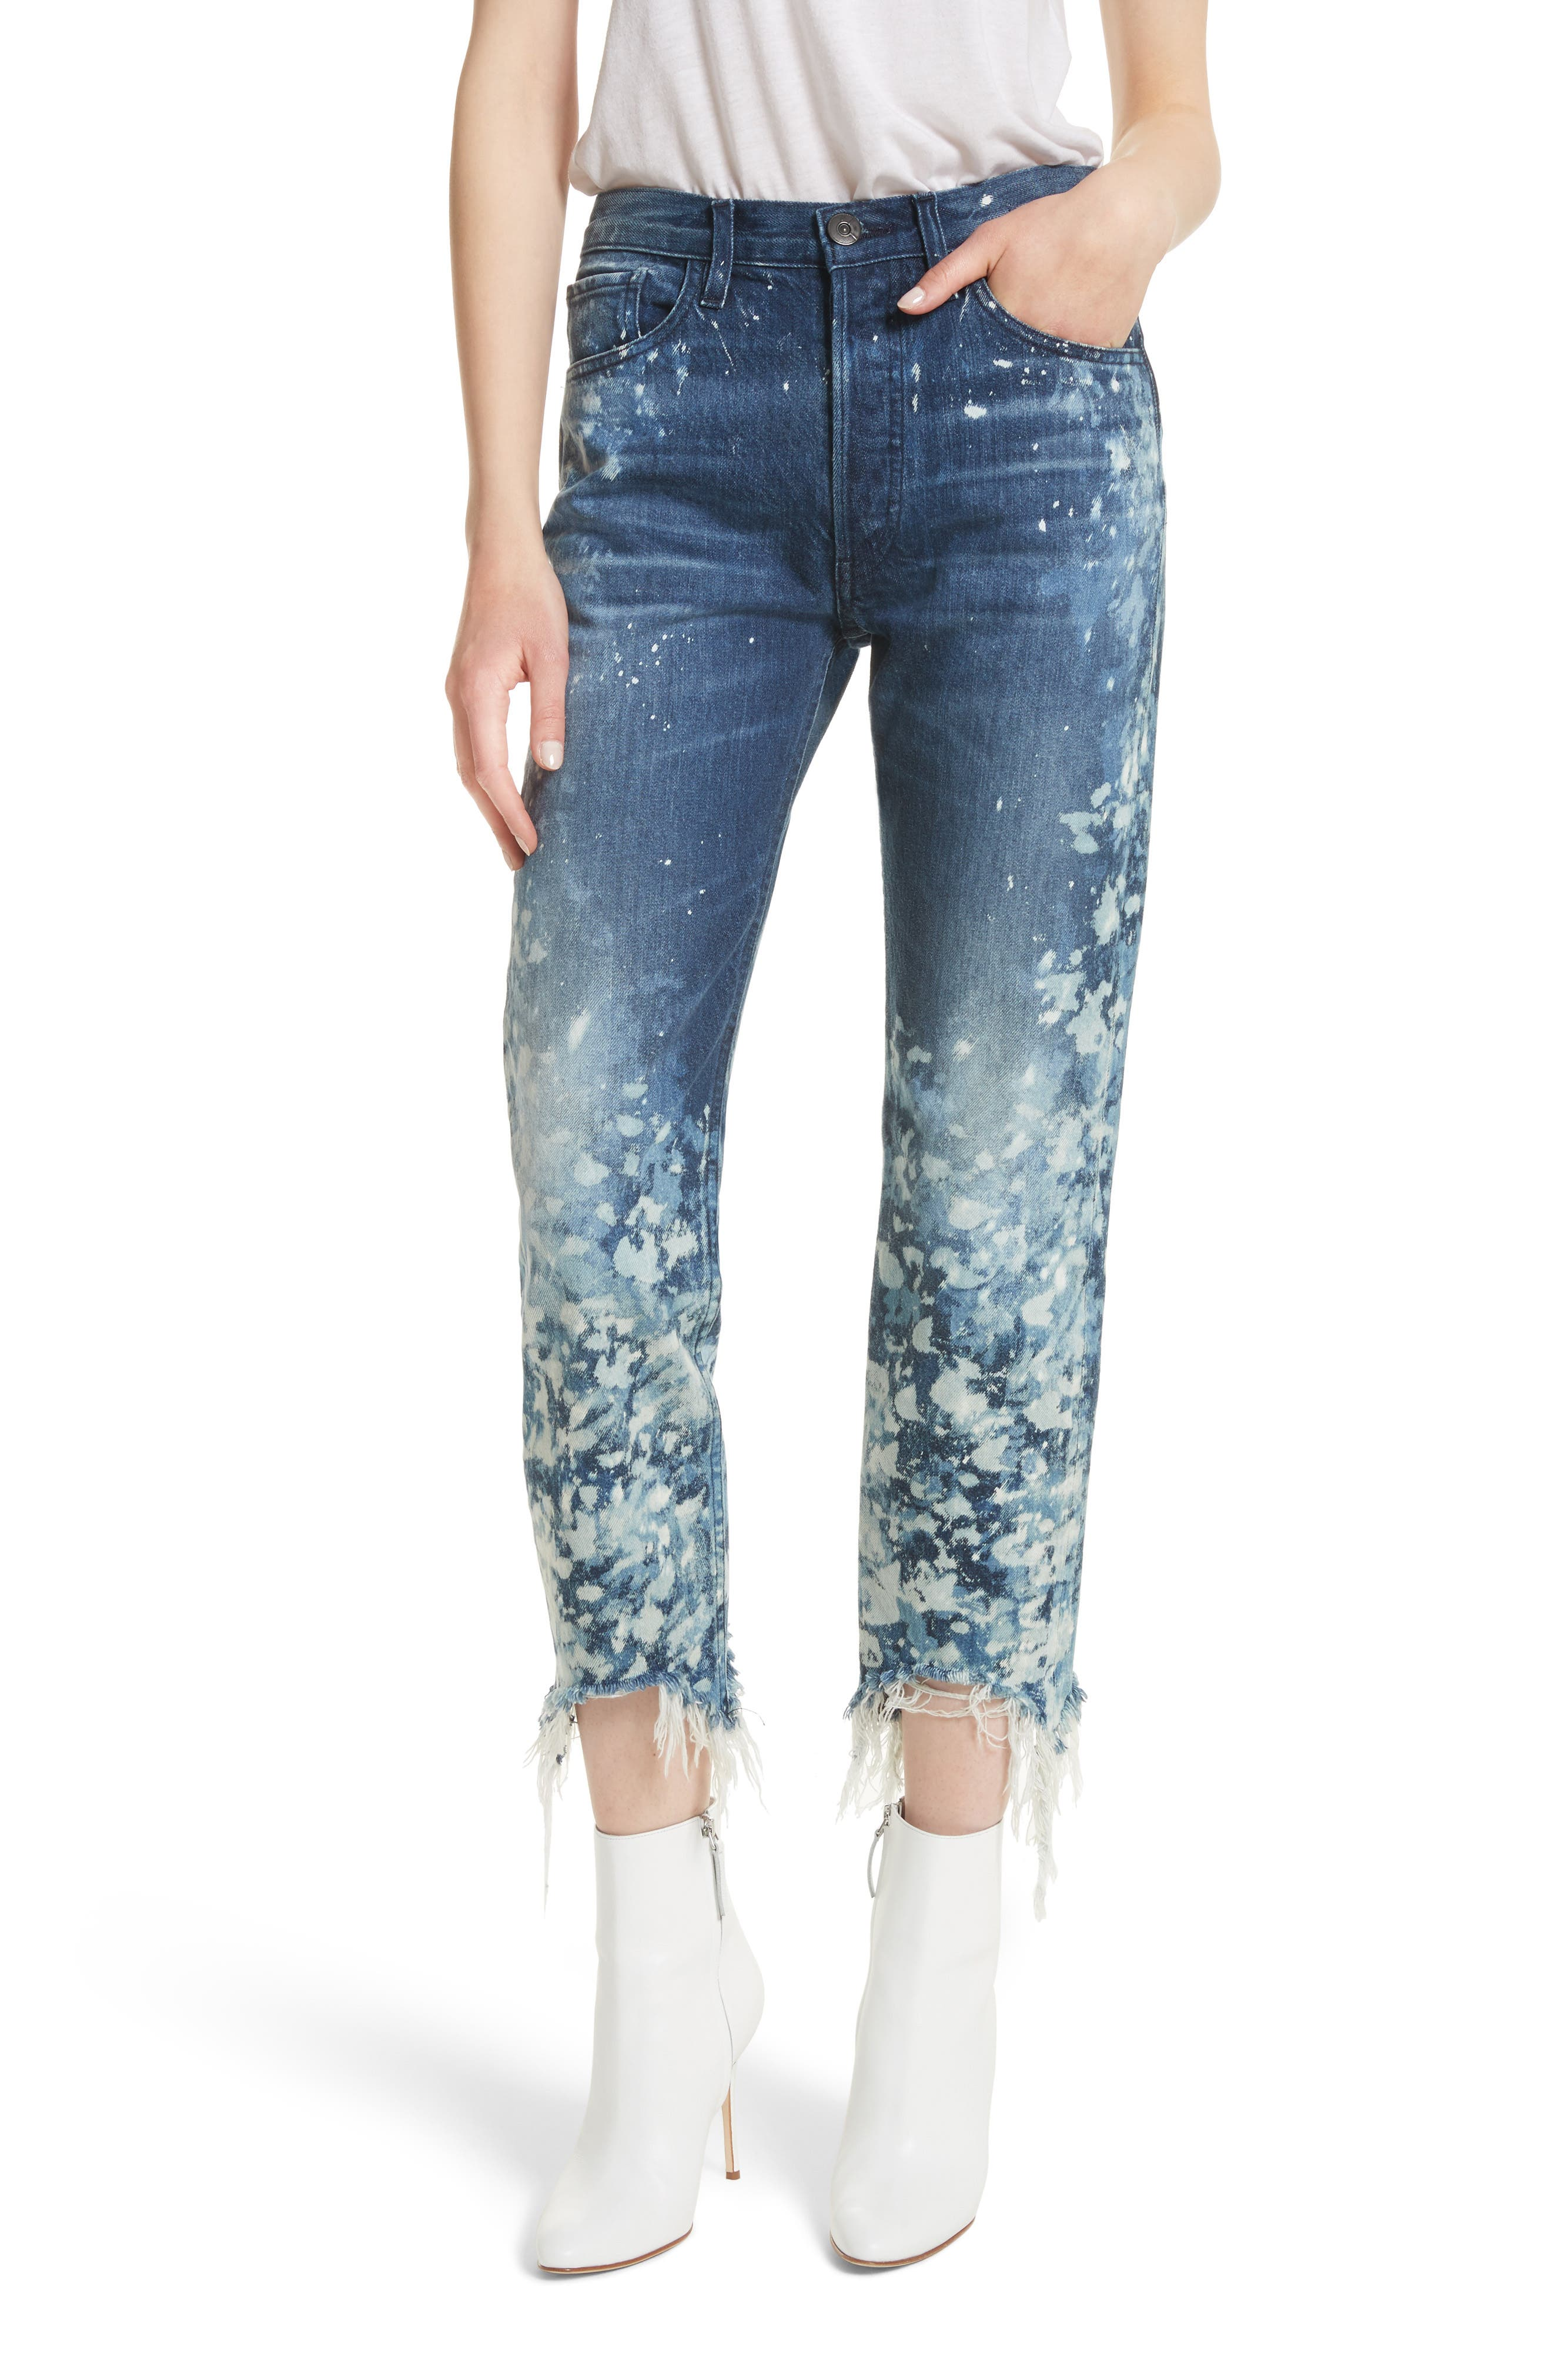 W3 Higher Ground Bleached Ankle Slim Fit Jeans,                         Main,                         color, Stardust